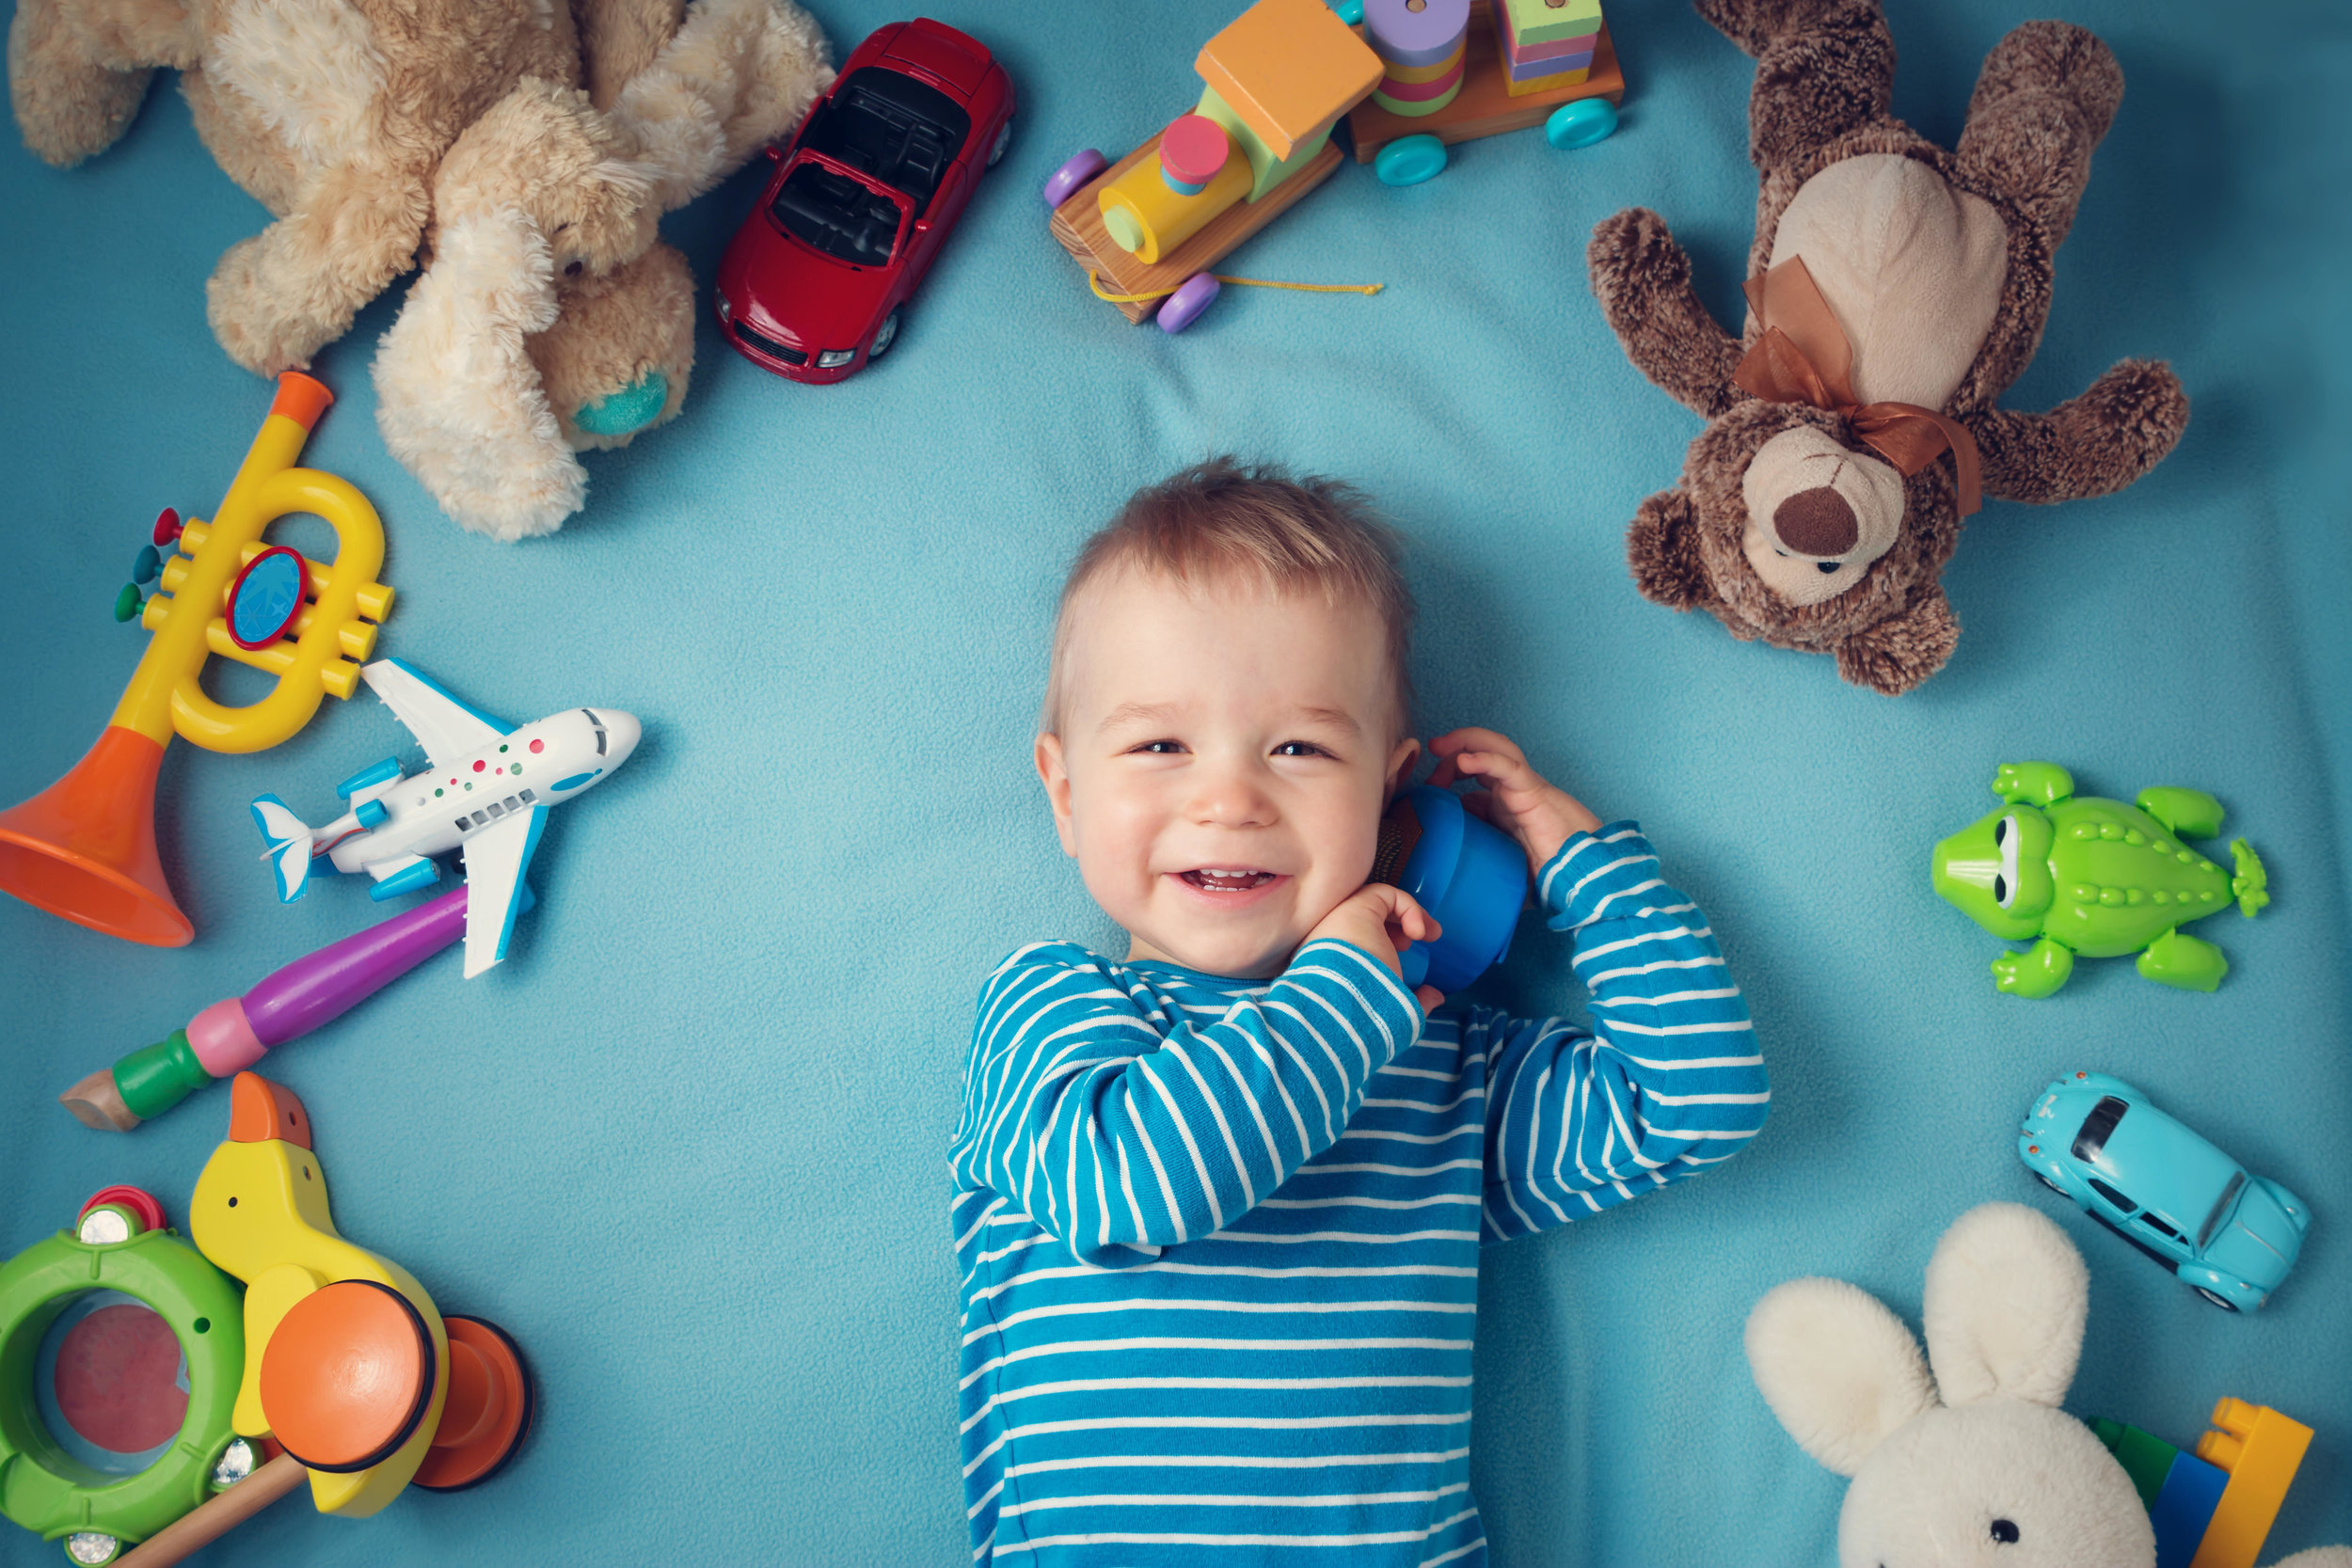 Fun & Laughter - Visit us and your babies and toddlers will have a great time on the bouncy castle and in the babies play area as you grab a coffee and a snack and chat with friends whilst keeping a watchful eye on your little ones!Learn more ➝